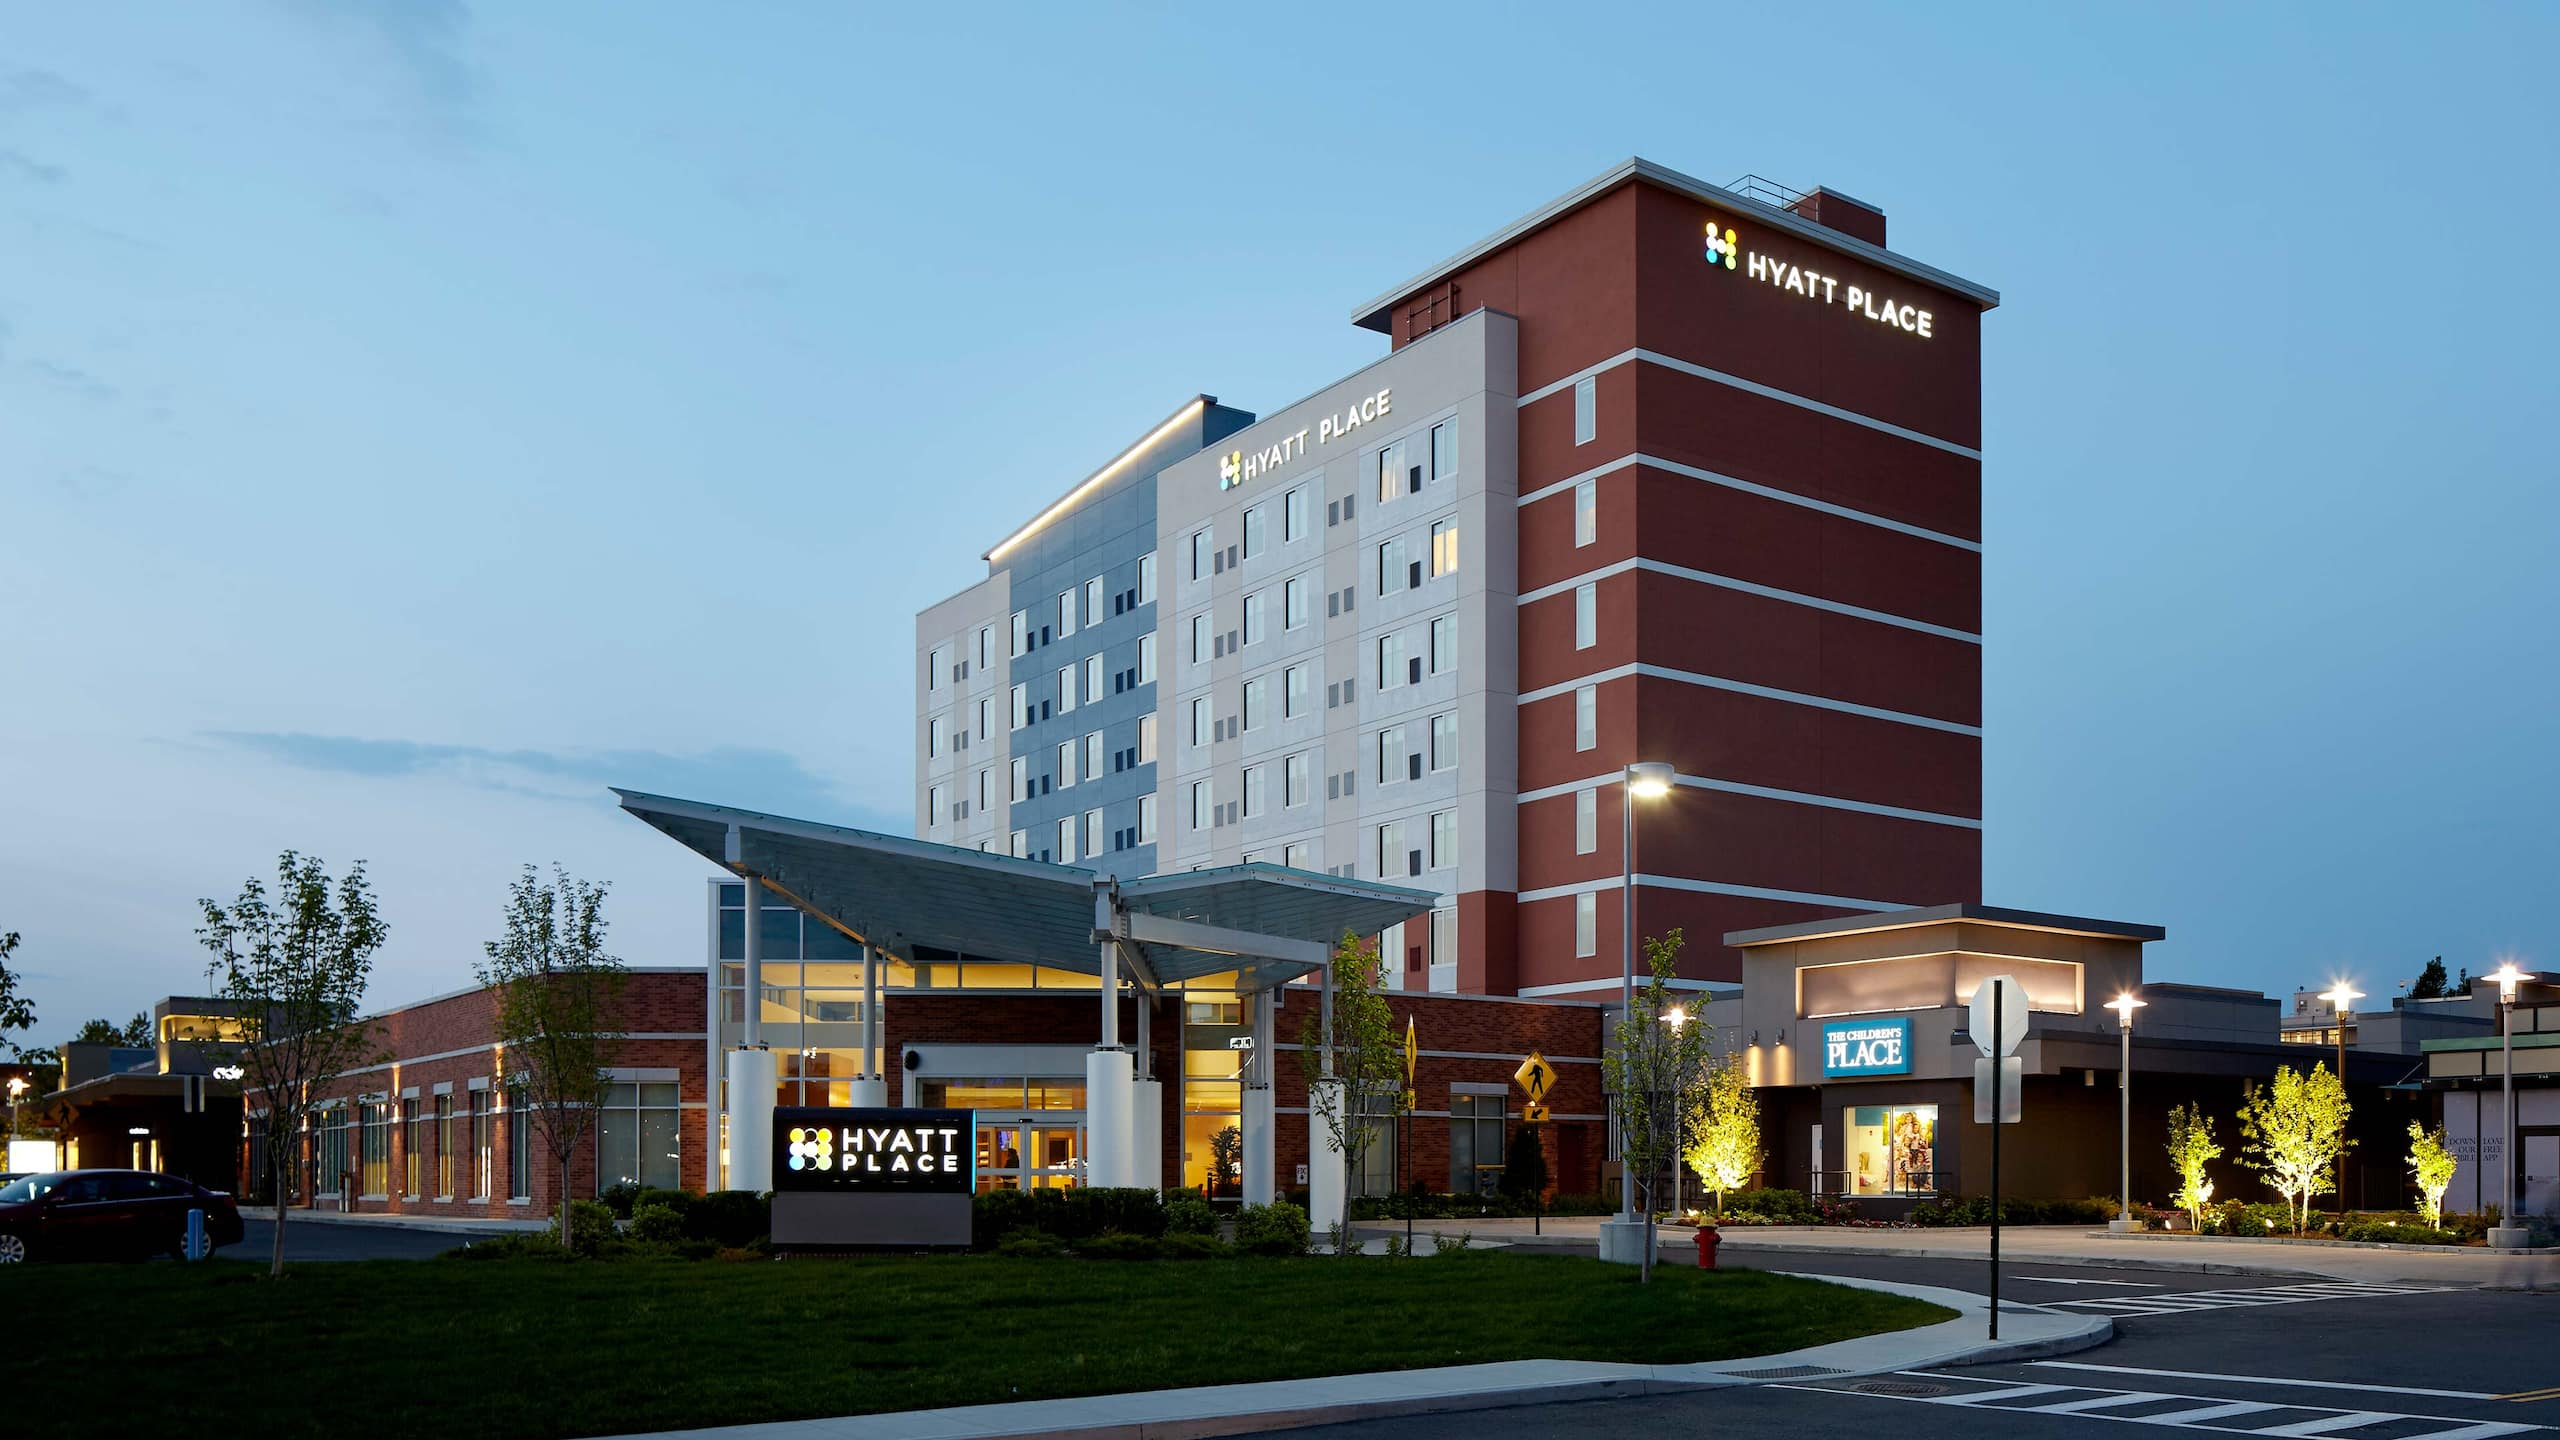 hotel in yonkers ny hyatt place new york yonkers yonkers ny hyatt place new york yonkers